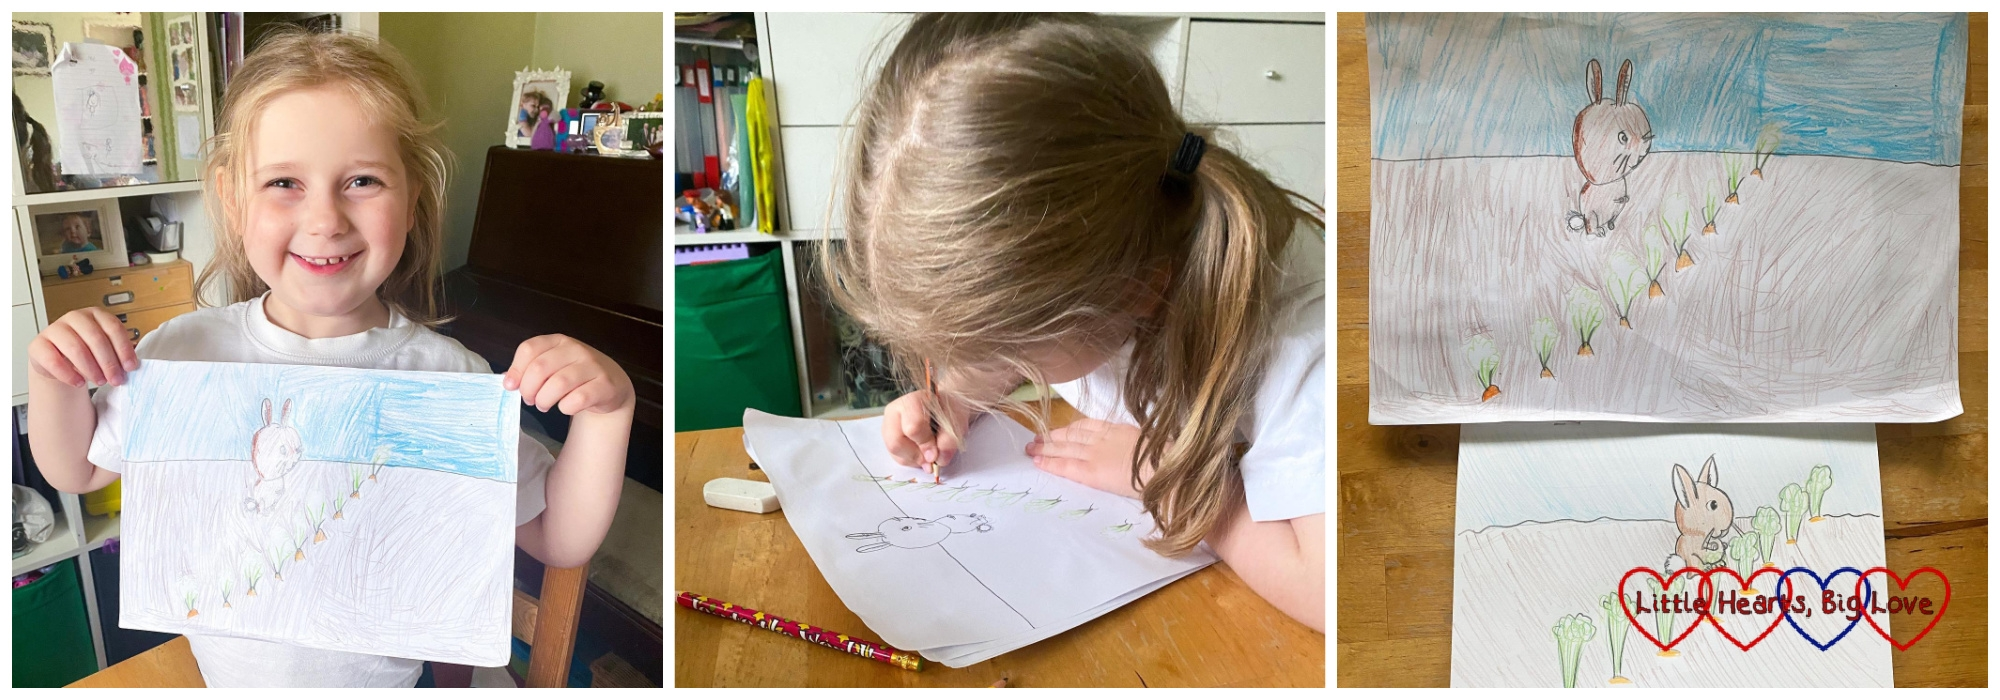 Sophie holding her drawing of a rabbit; Sophie drawing a rabbit; my drawing and Sophie's drawing of a rabbit